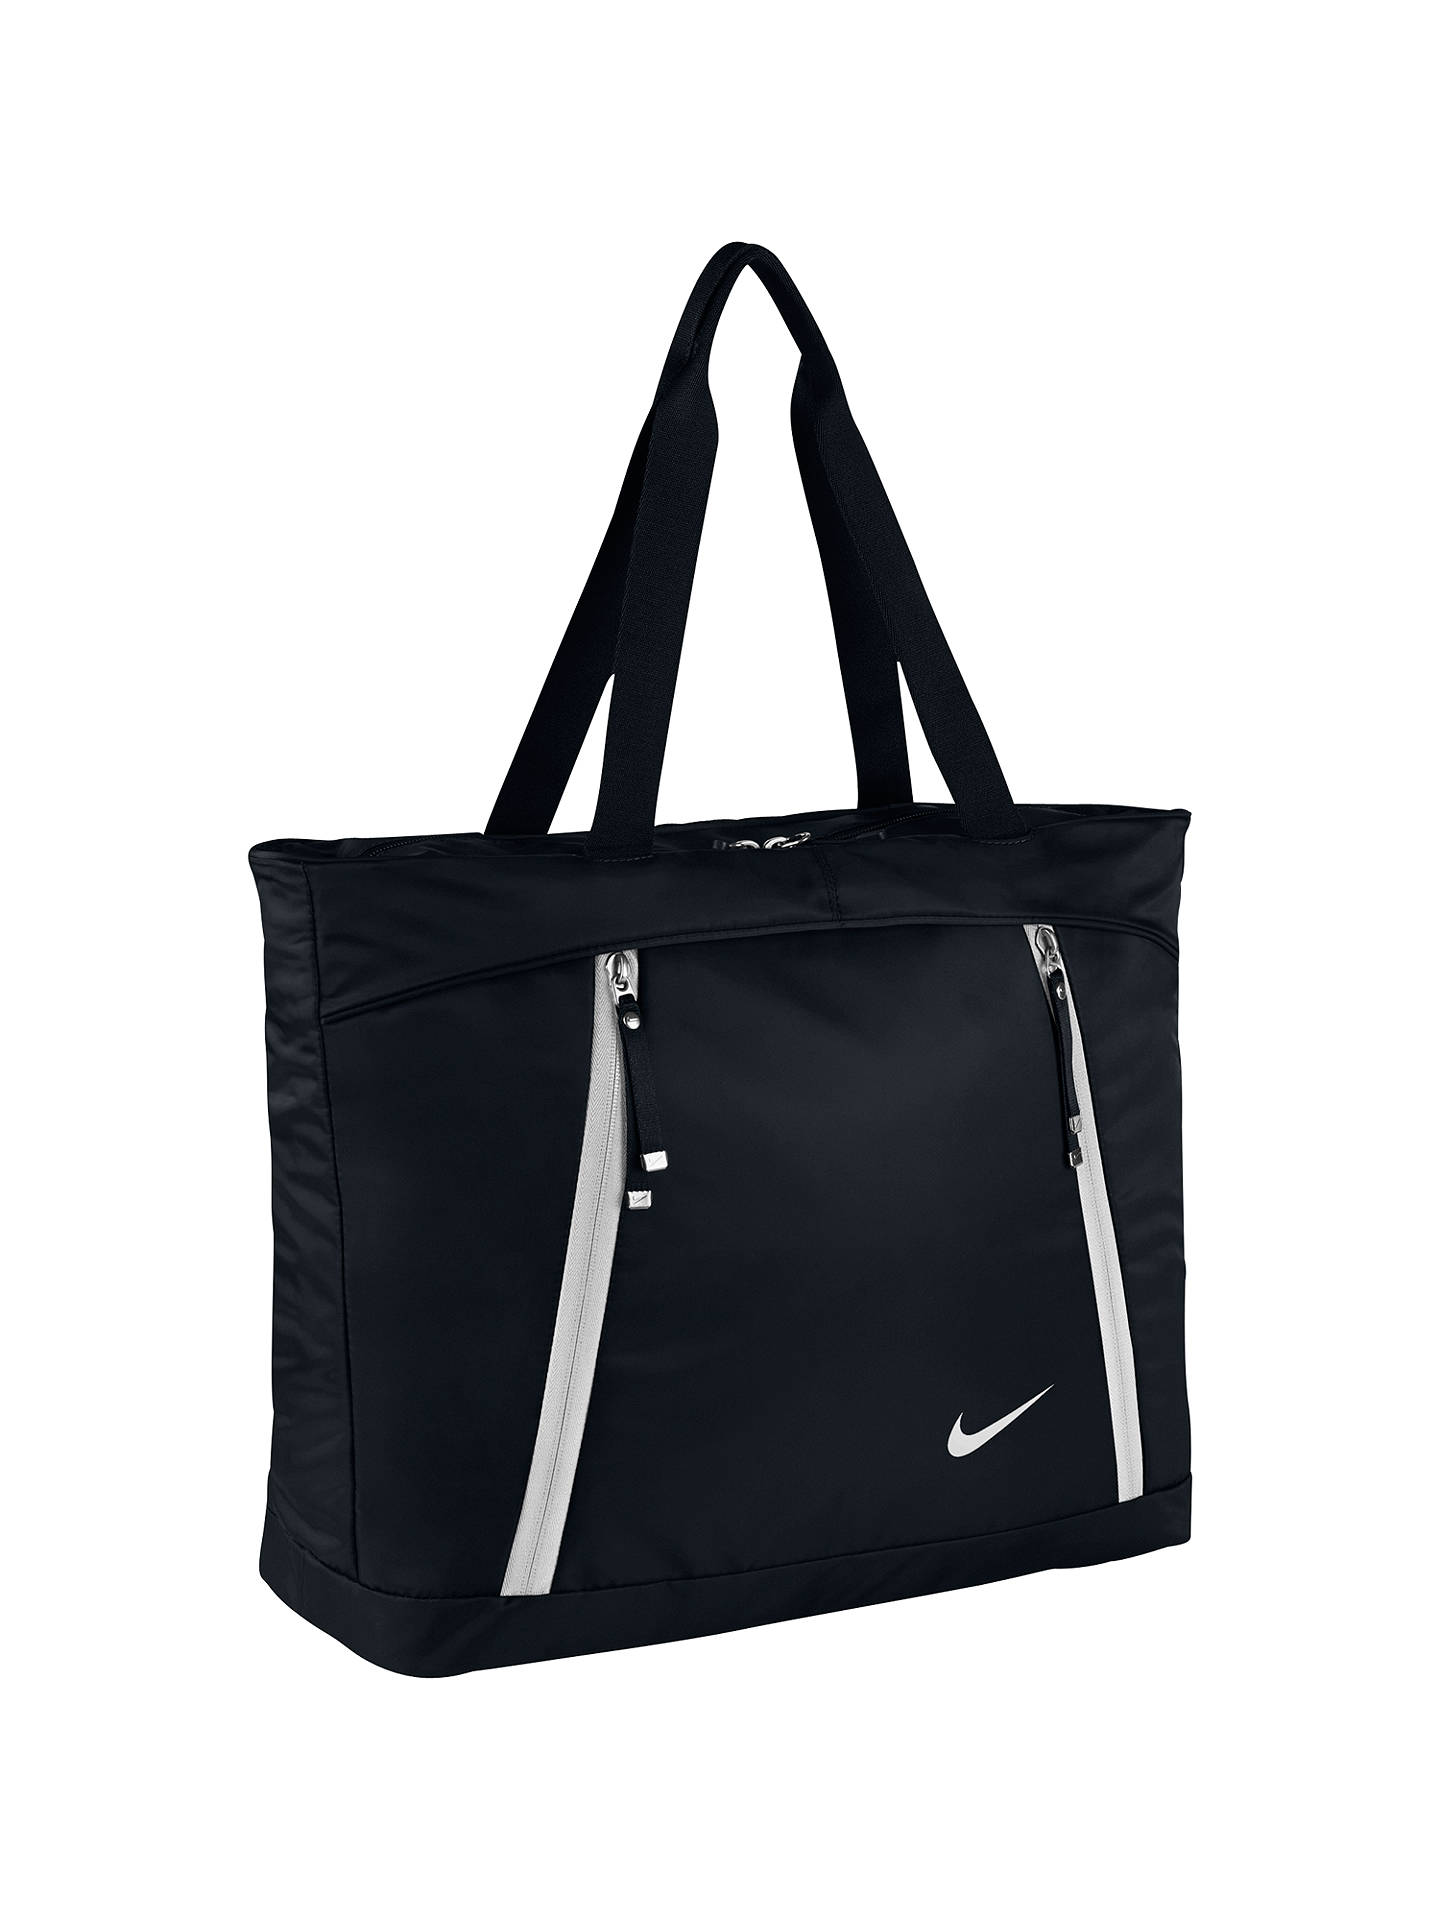 451300ebc857 BuyNike Auralux Training Tote Bag